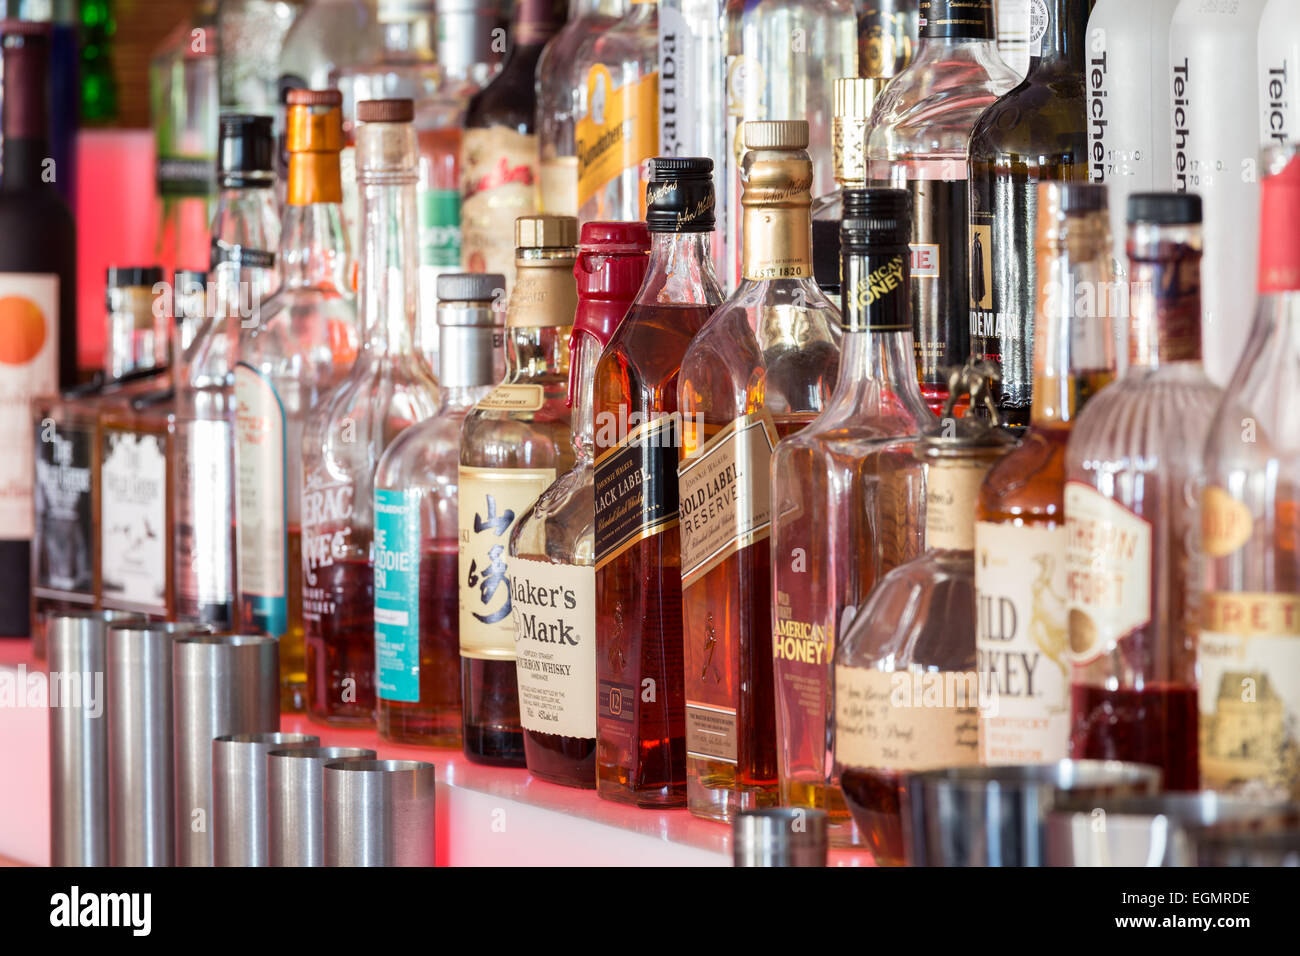 whisky bottles bar photos whisky bottles bar images alamy. Black Bedroom Furniture Sets. Home Design Ideas